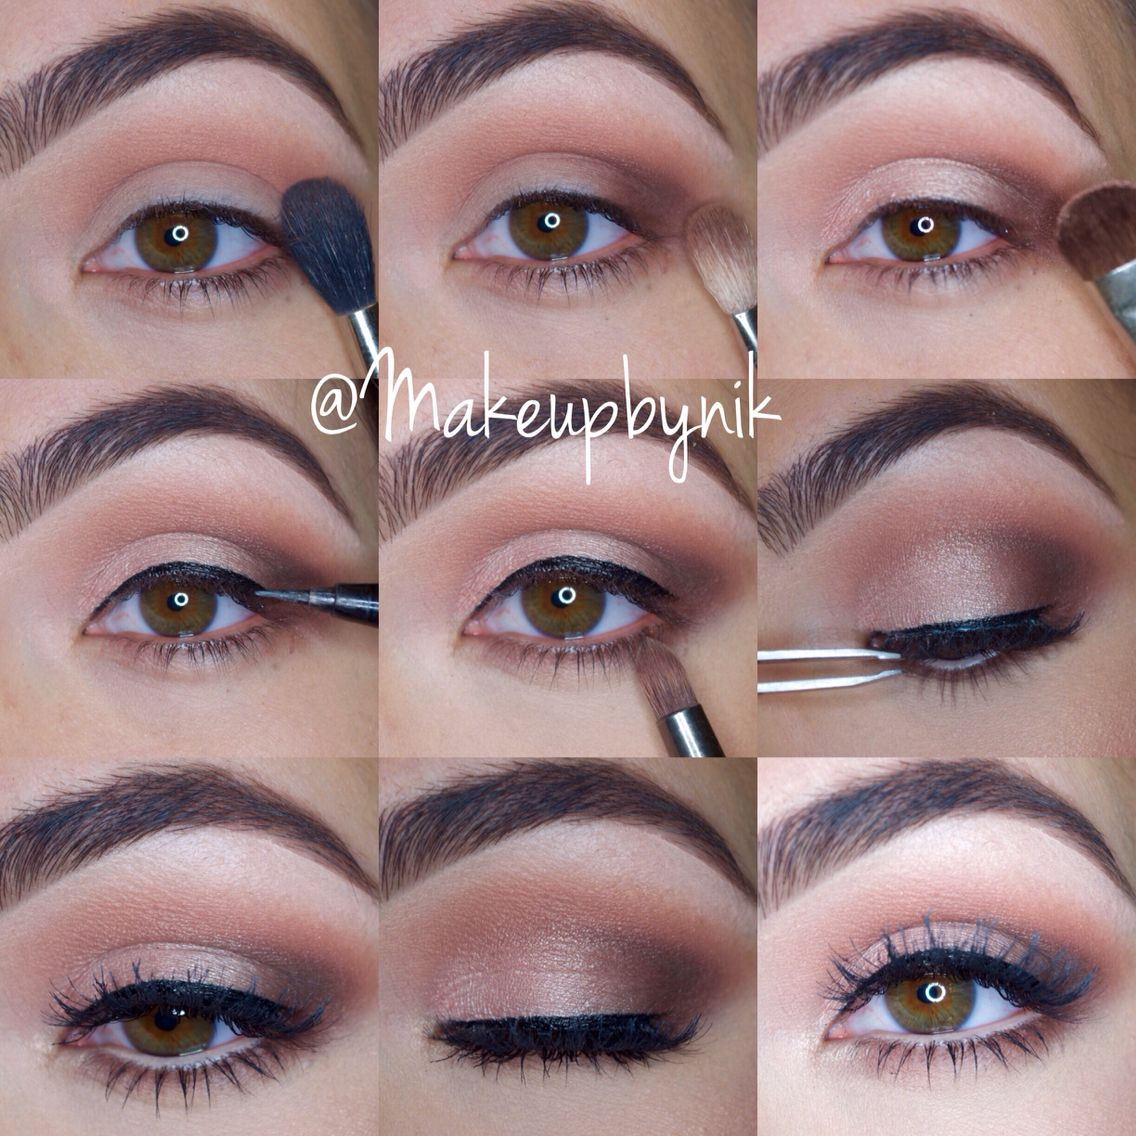 Too faced chocolate bar tutorial for details find makeupbynik on too faced chocolate bar tutorial for details find makeupbynik on instagram baditri Images